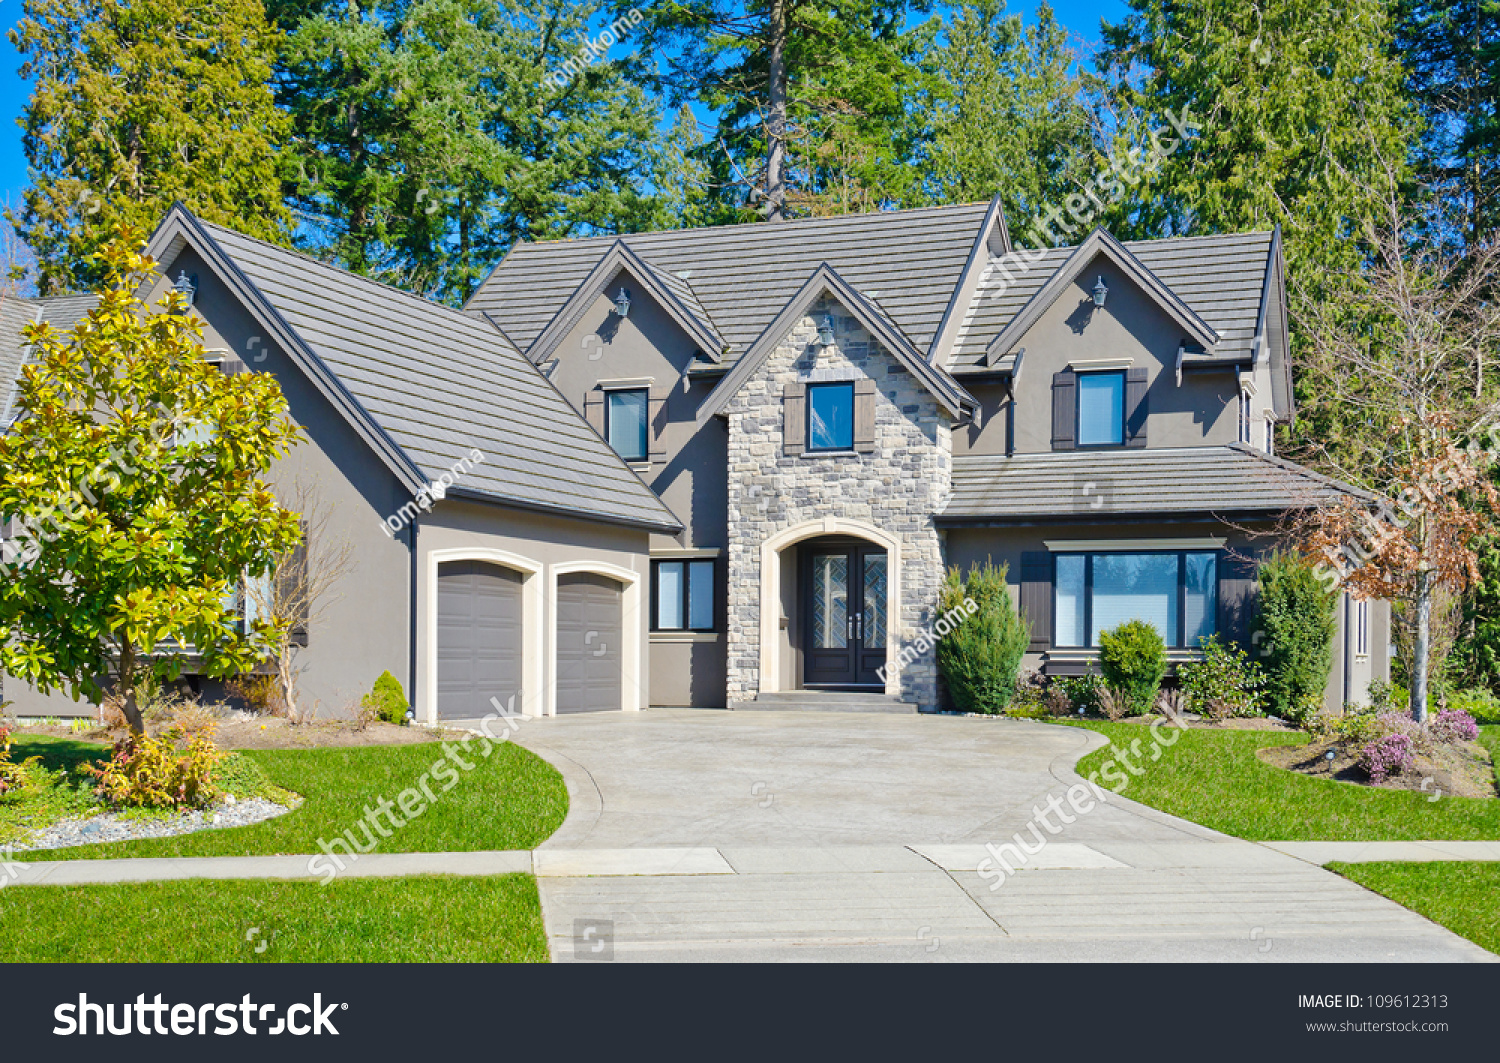 Custom built big luxury house double stock photo 109612313 for House with big garage